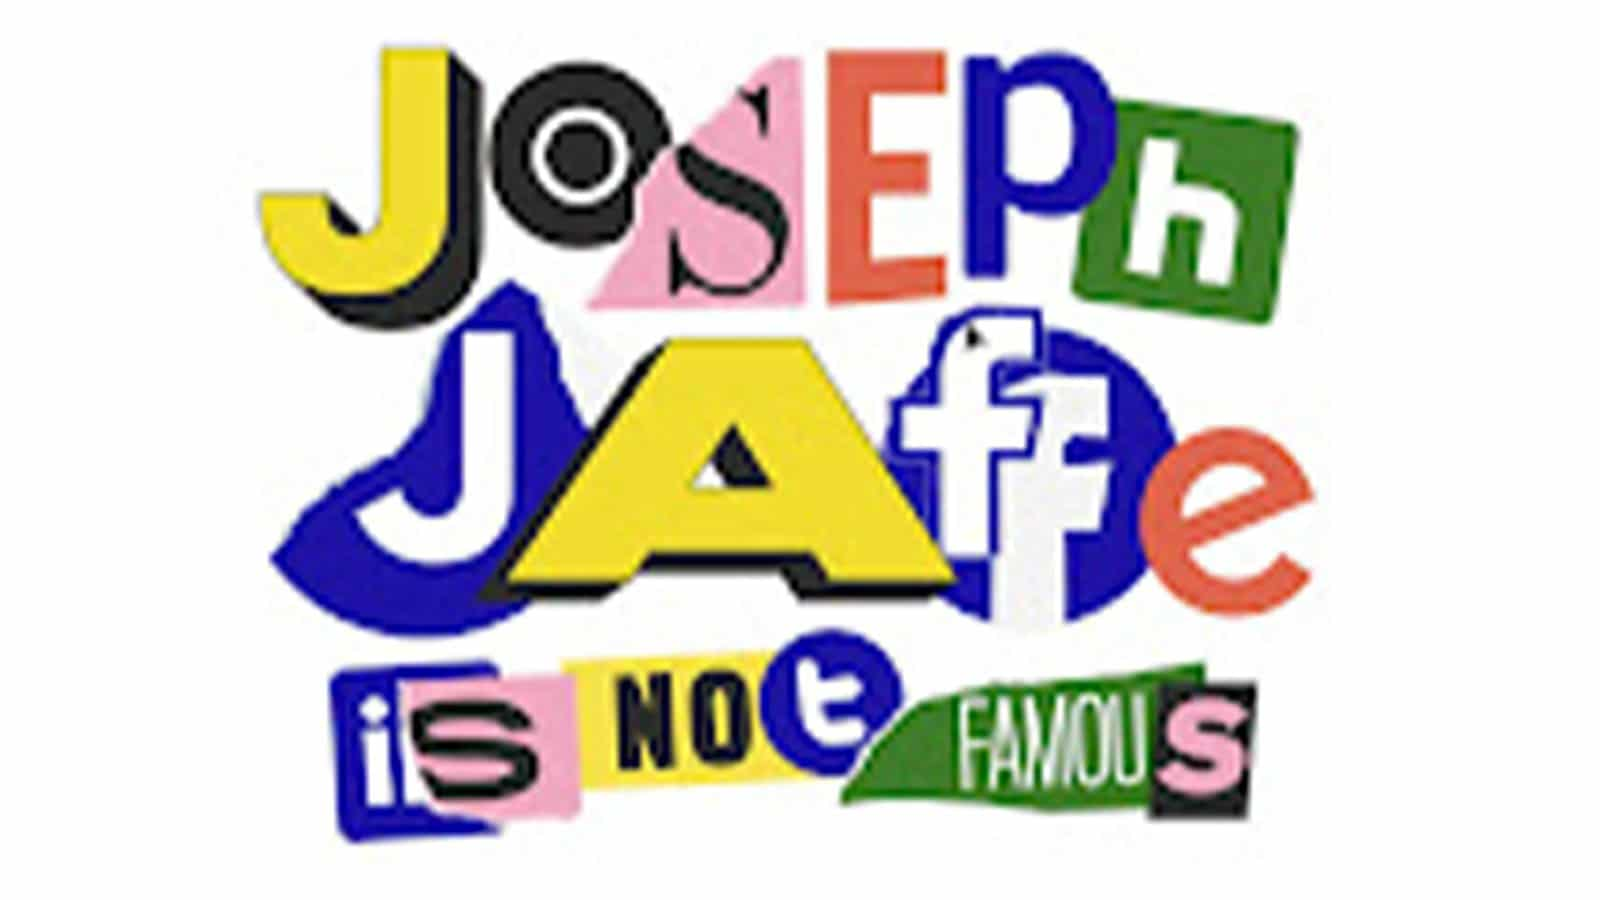 Joseph Jaffe Is Not Famous: Channeling the Power of Creativity